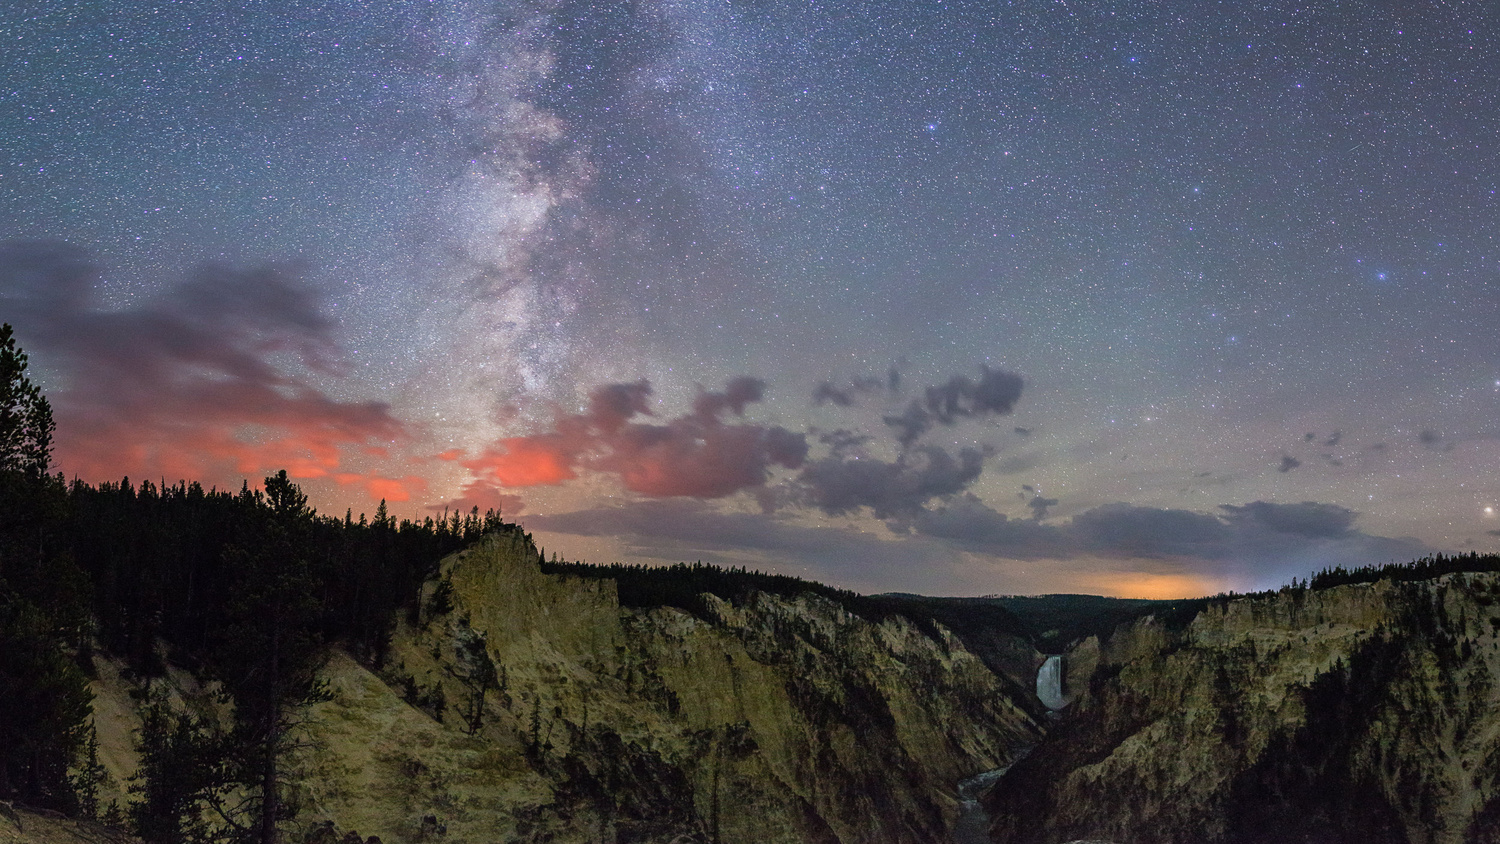 Stars And Fire Over Yellowstone Falls by JT Blenker